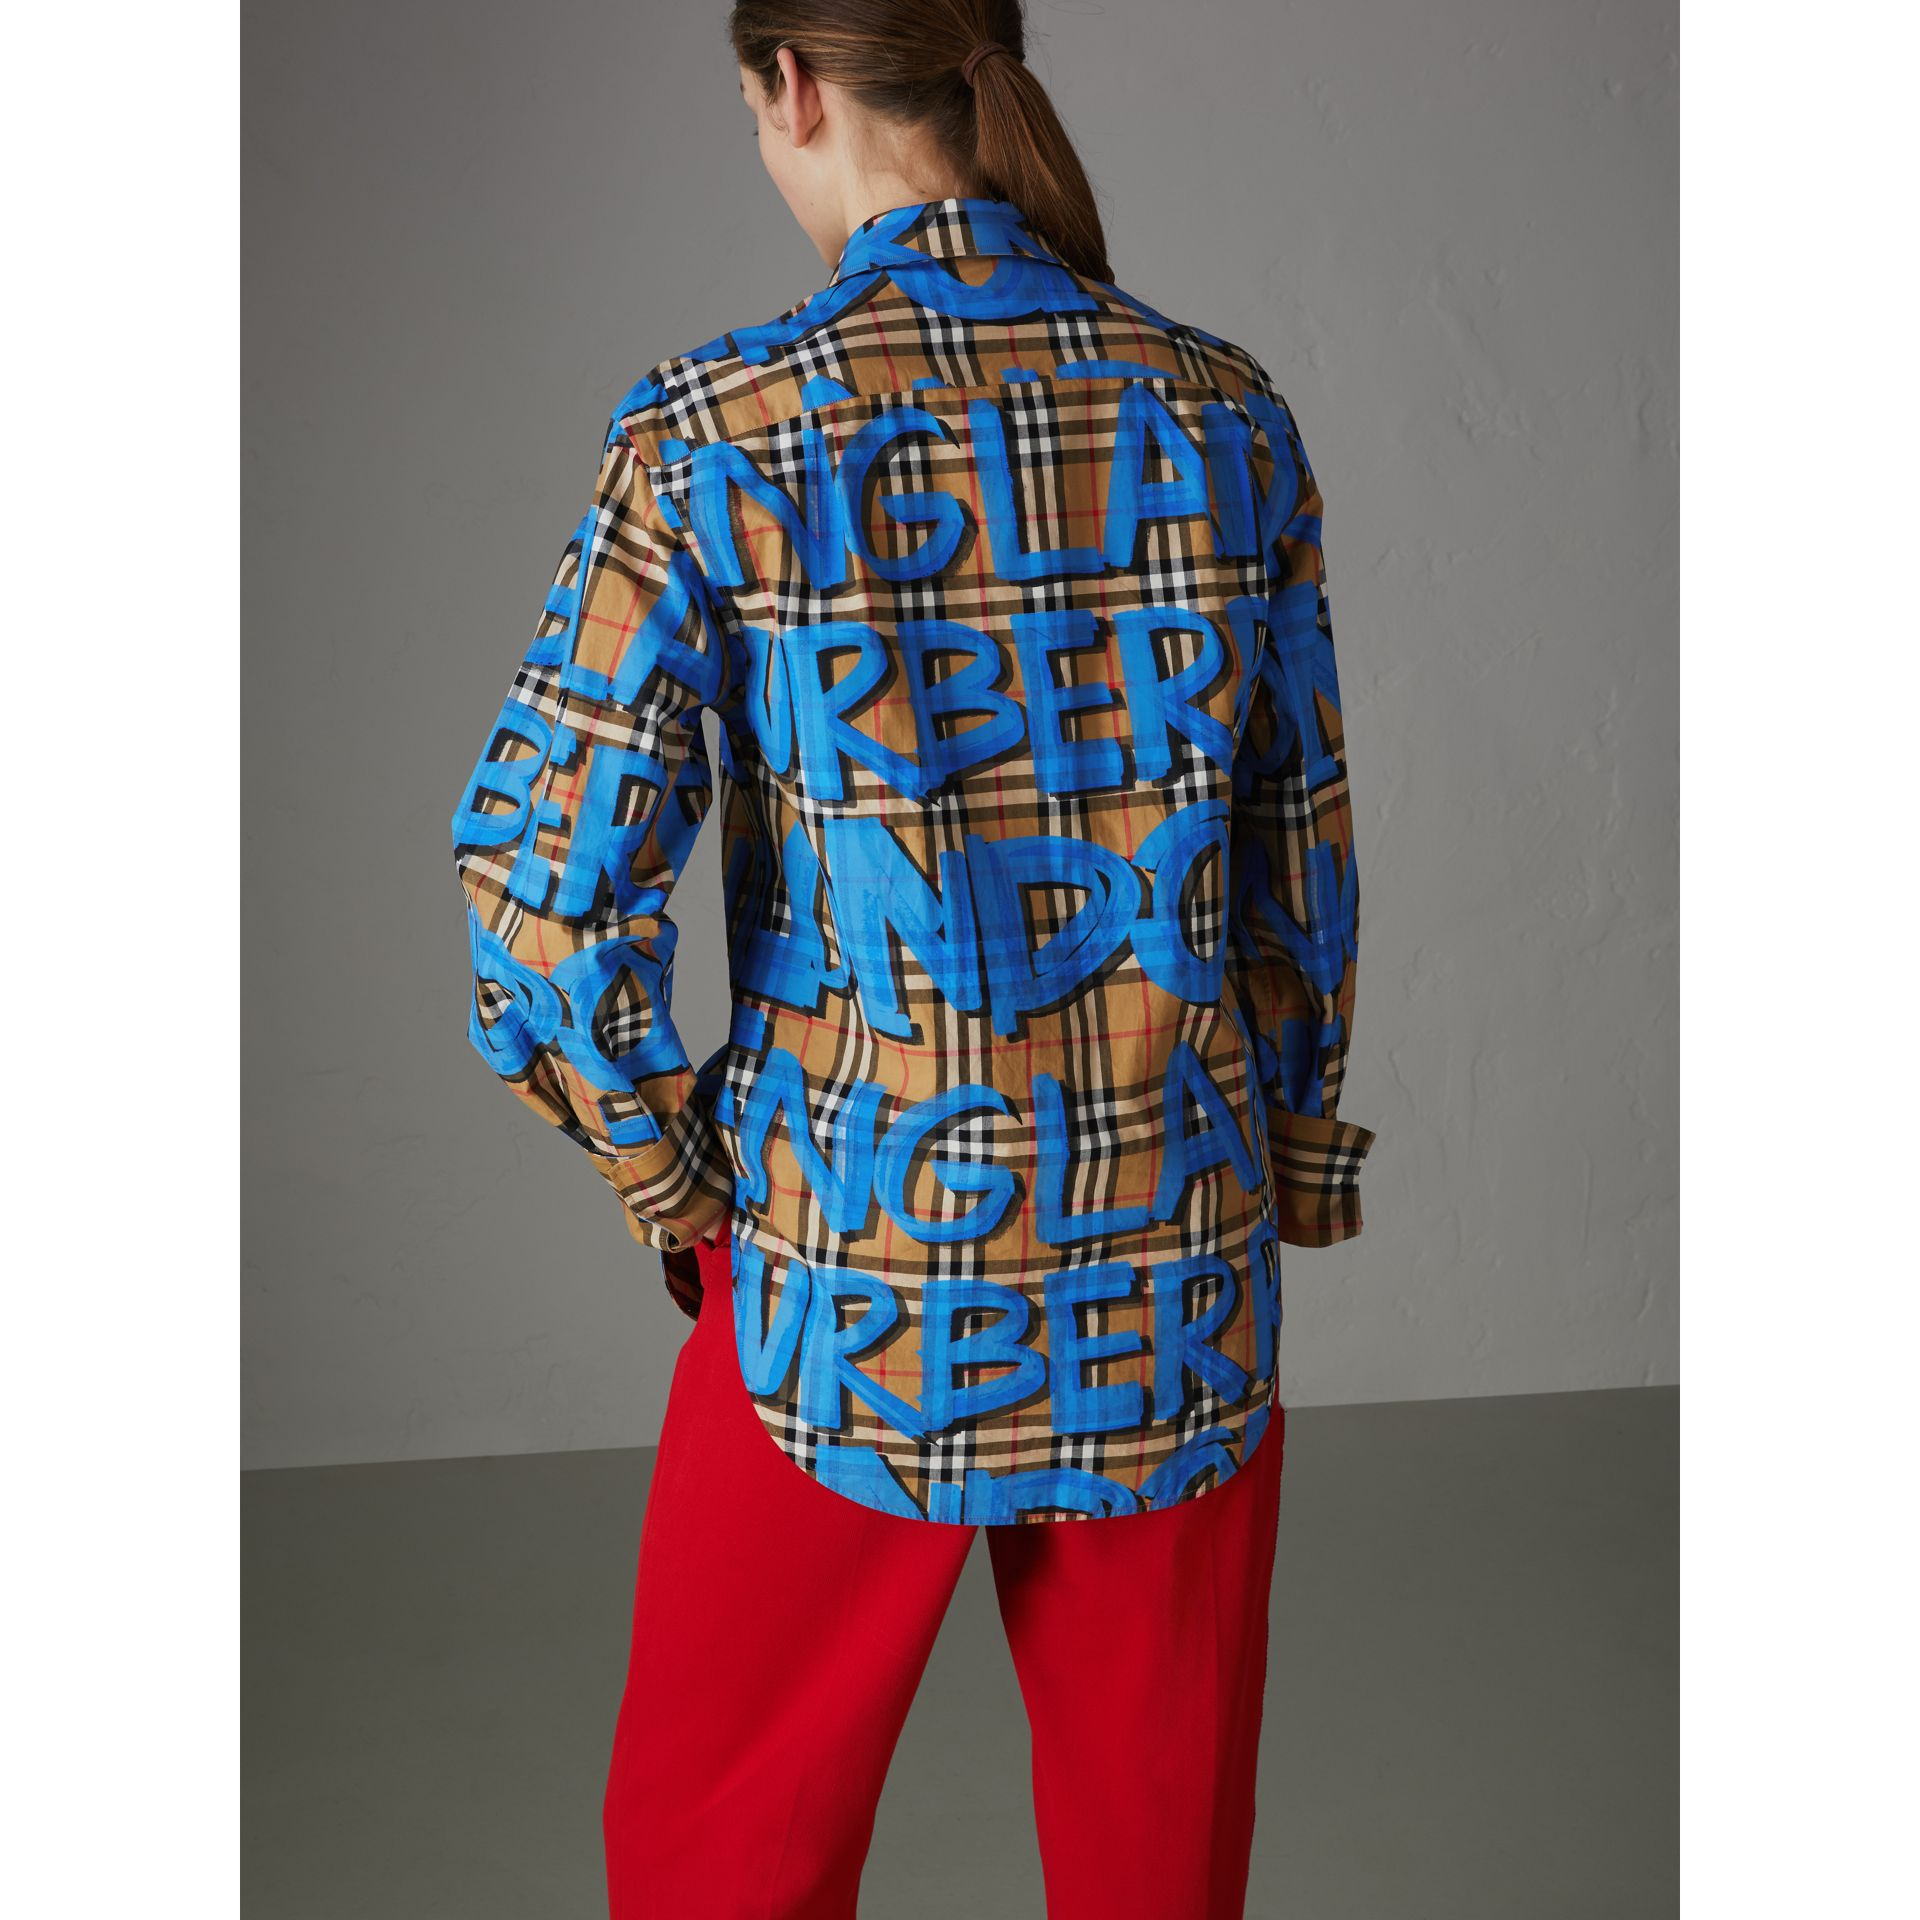 Graffiti Print Vintage Check Cotton Shirt in Bright Blue - Women | Burberry - gallery image 2